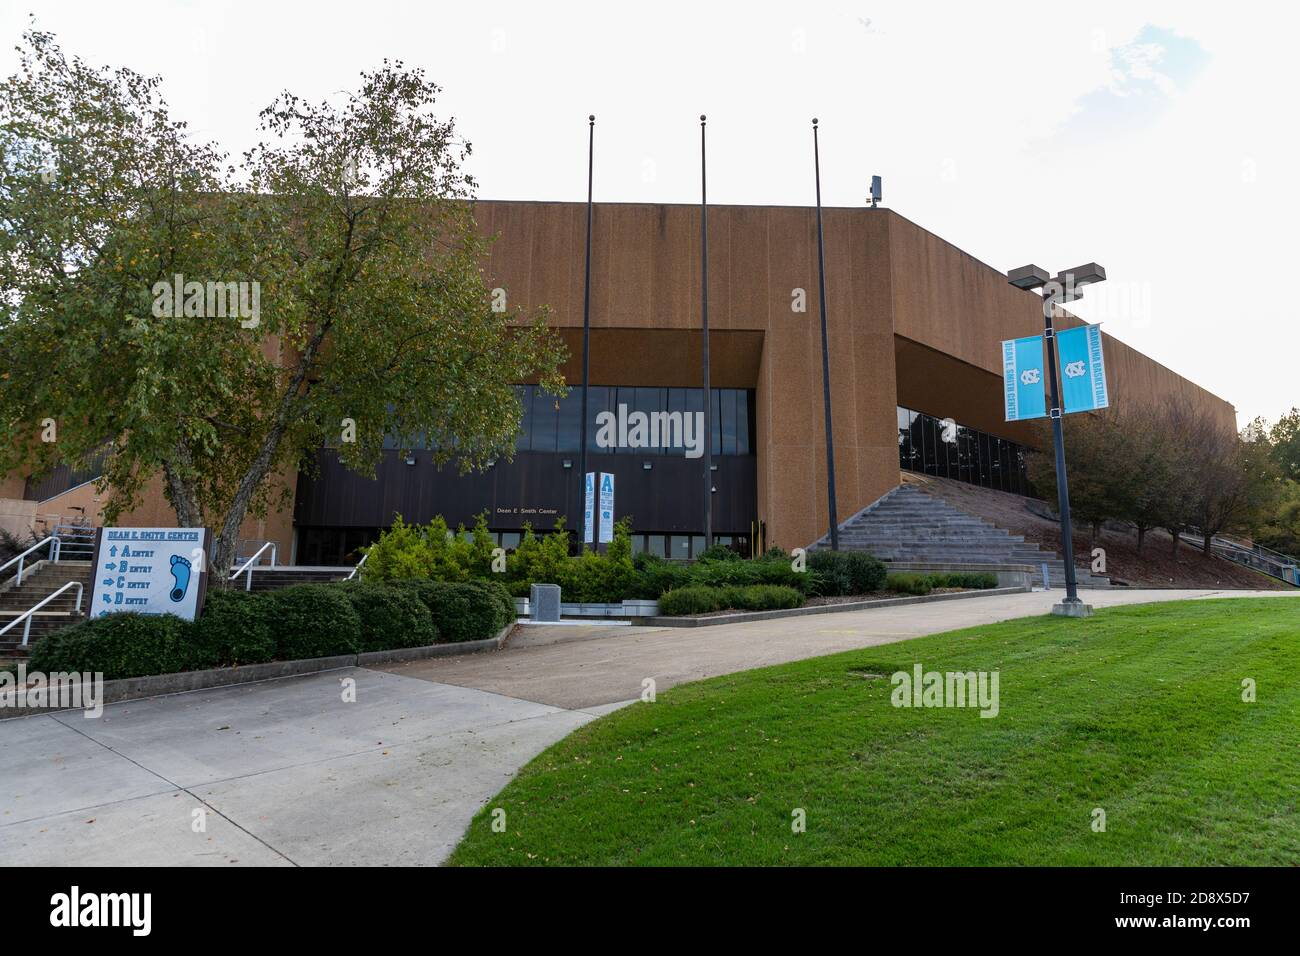 Chapel Hill, NC / USA - October 22, 2020: Dean E. Smith Center on the campus of the University of North Carolina. Stock Photo